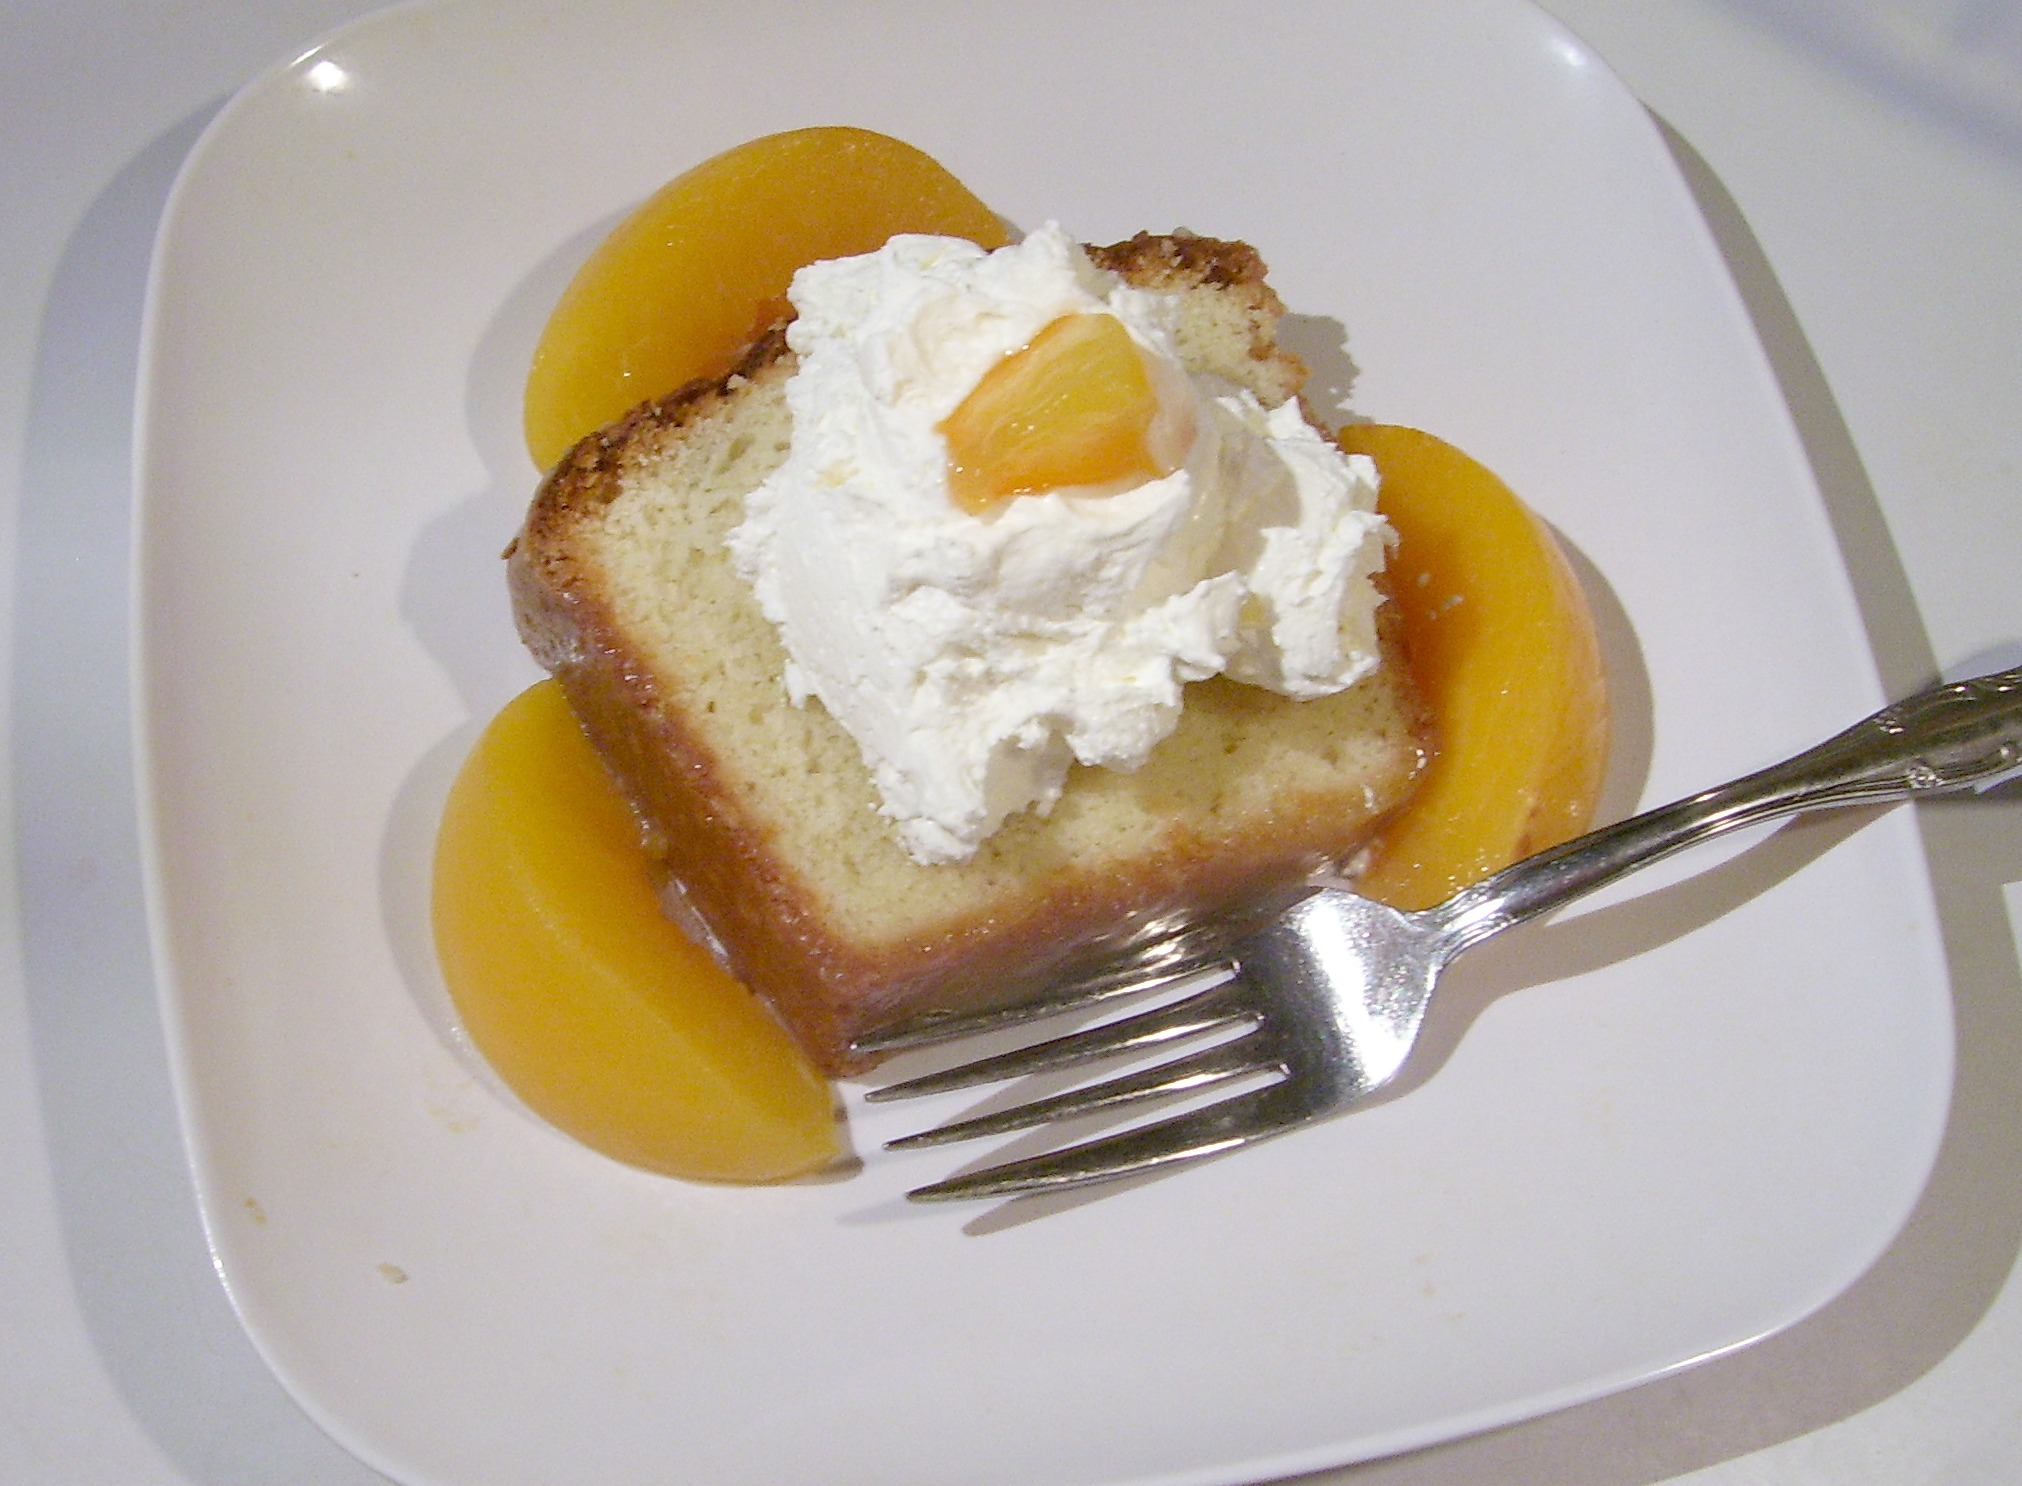 This delicious Old Fashioned Sour Cream Pound Cake made from scratch is served with peaches and sprinkles with Cinnamon Sugar.